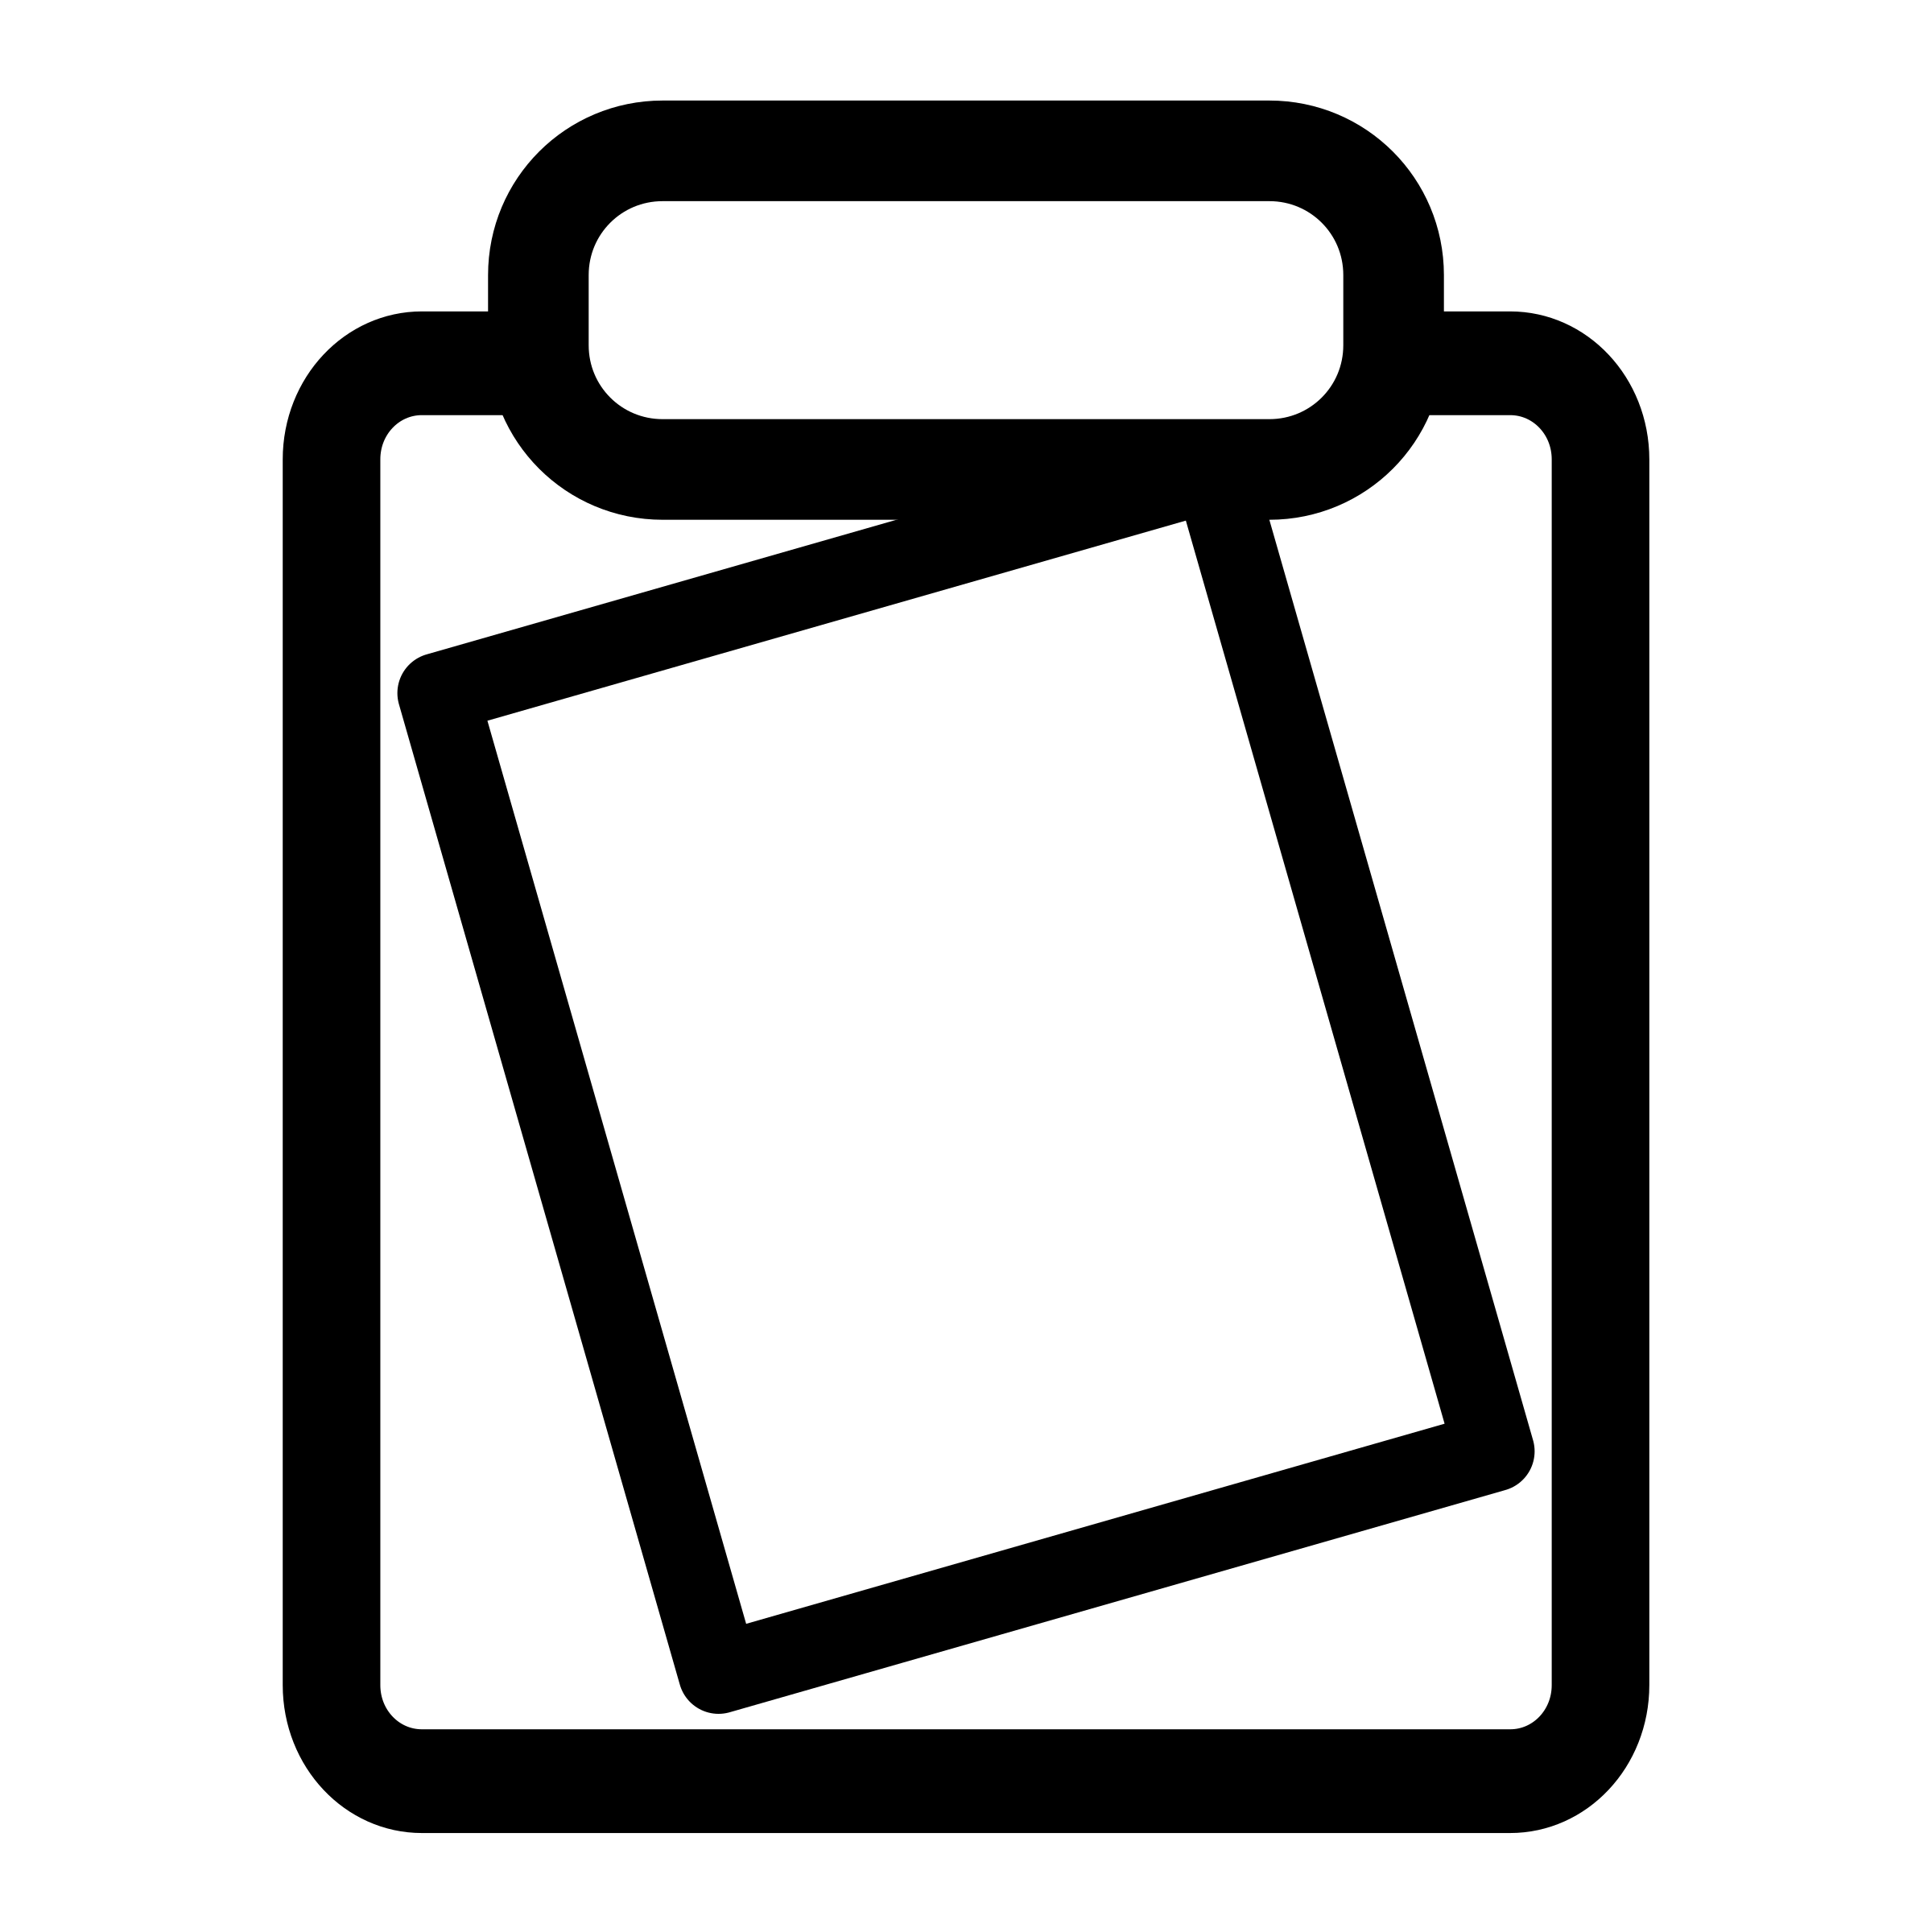 png black and white Mono tool big image. Clipboard clipart.